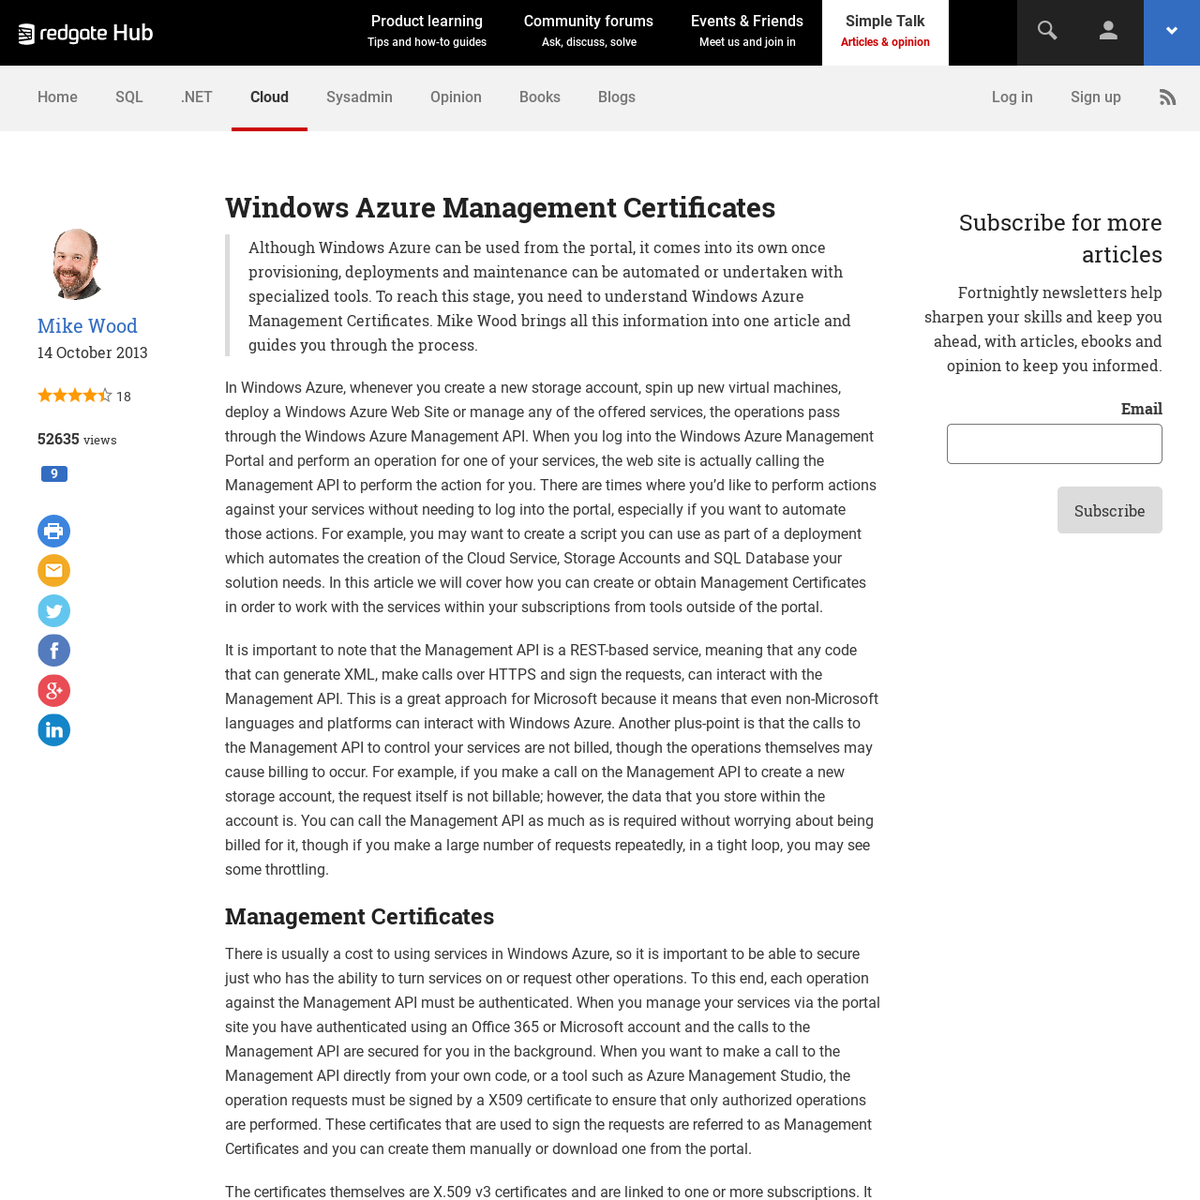 Windows Azure Management Certificates - Simple Talk